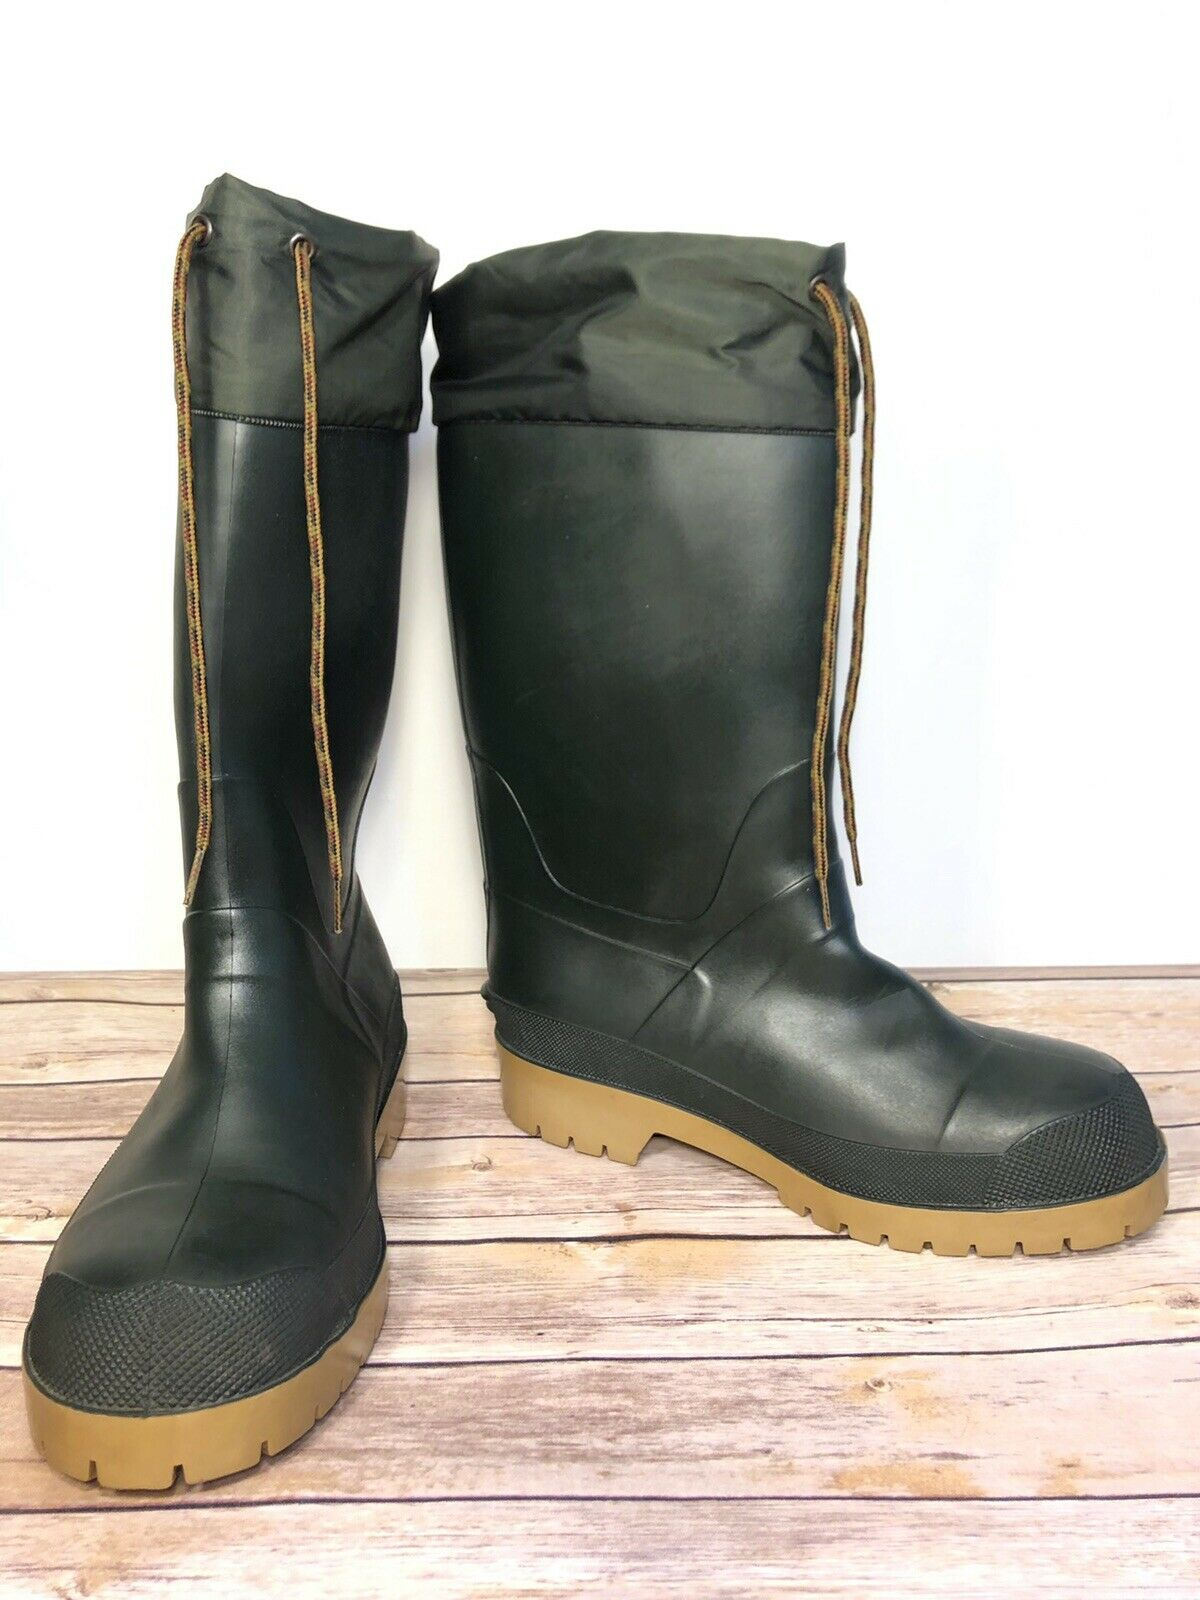 LL Bean Green Rubber Hunting Rain Snow Tall Boots Thermal Liner Men's Size 6